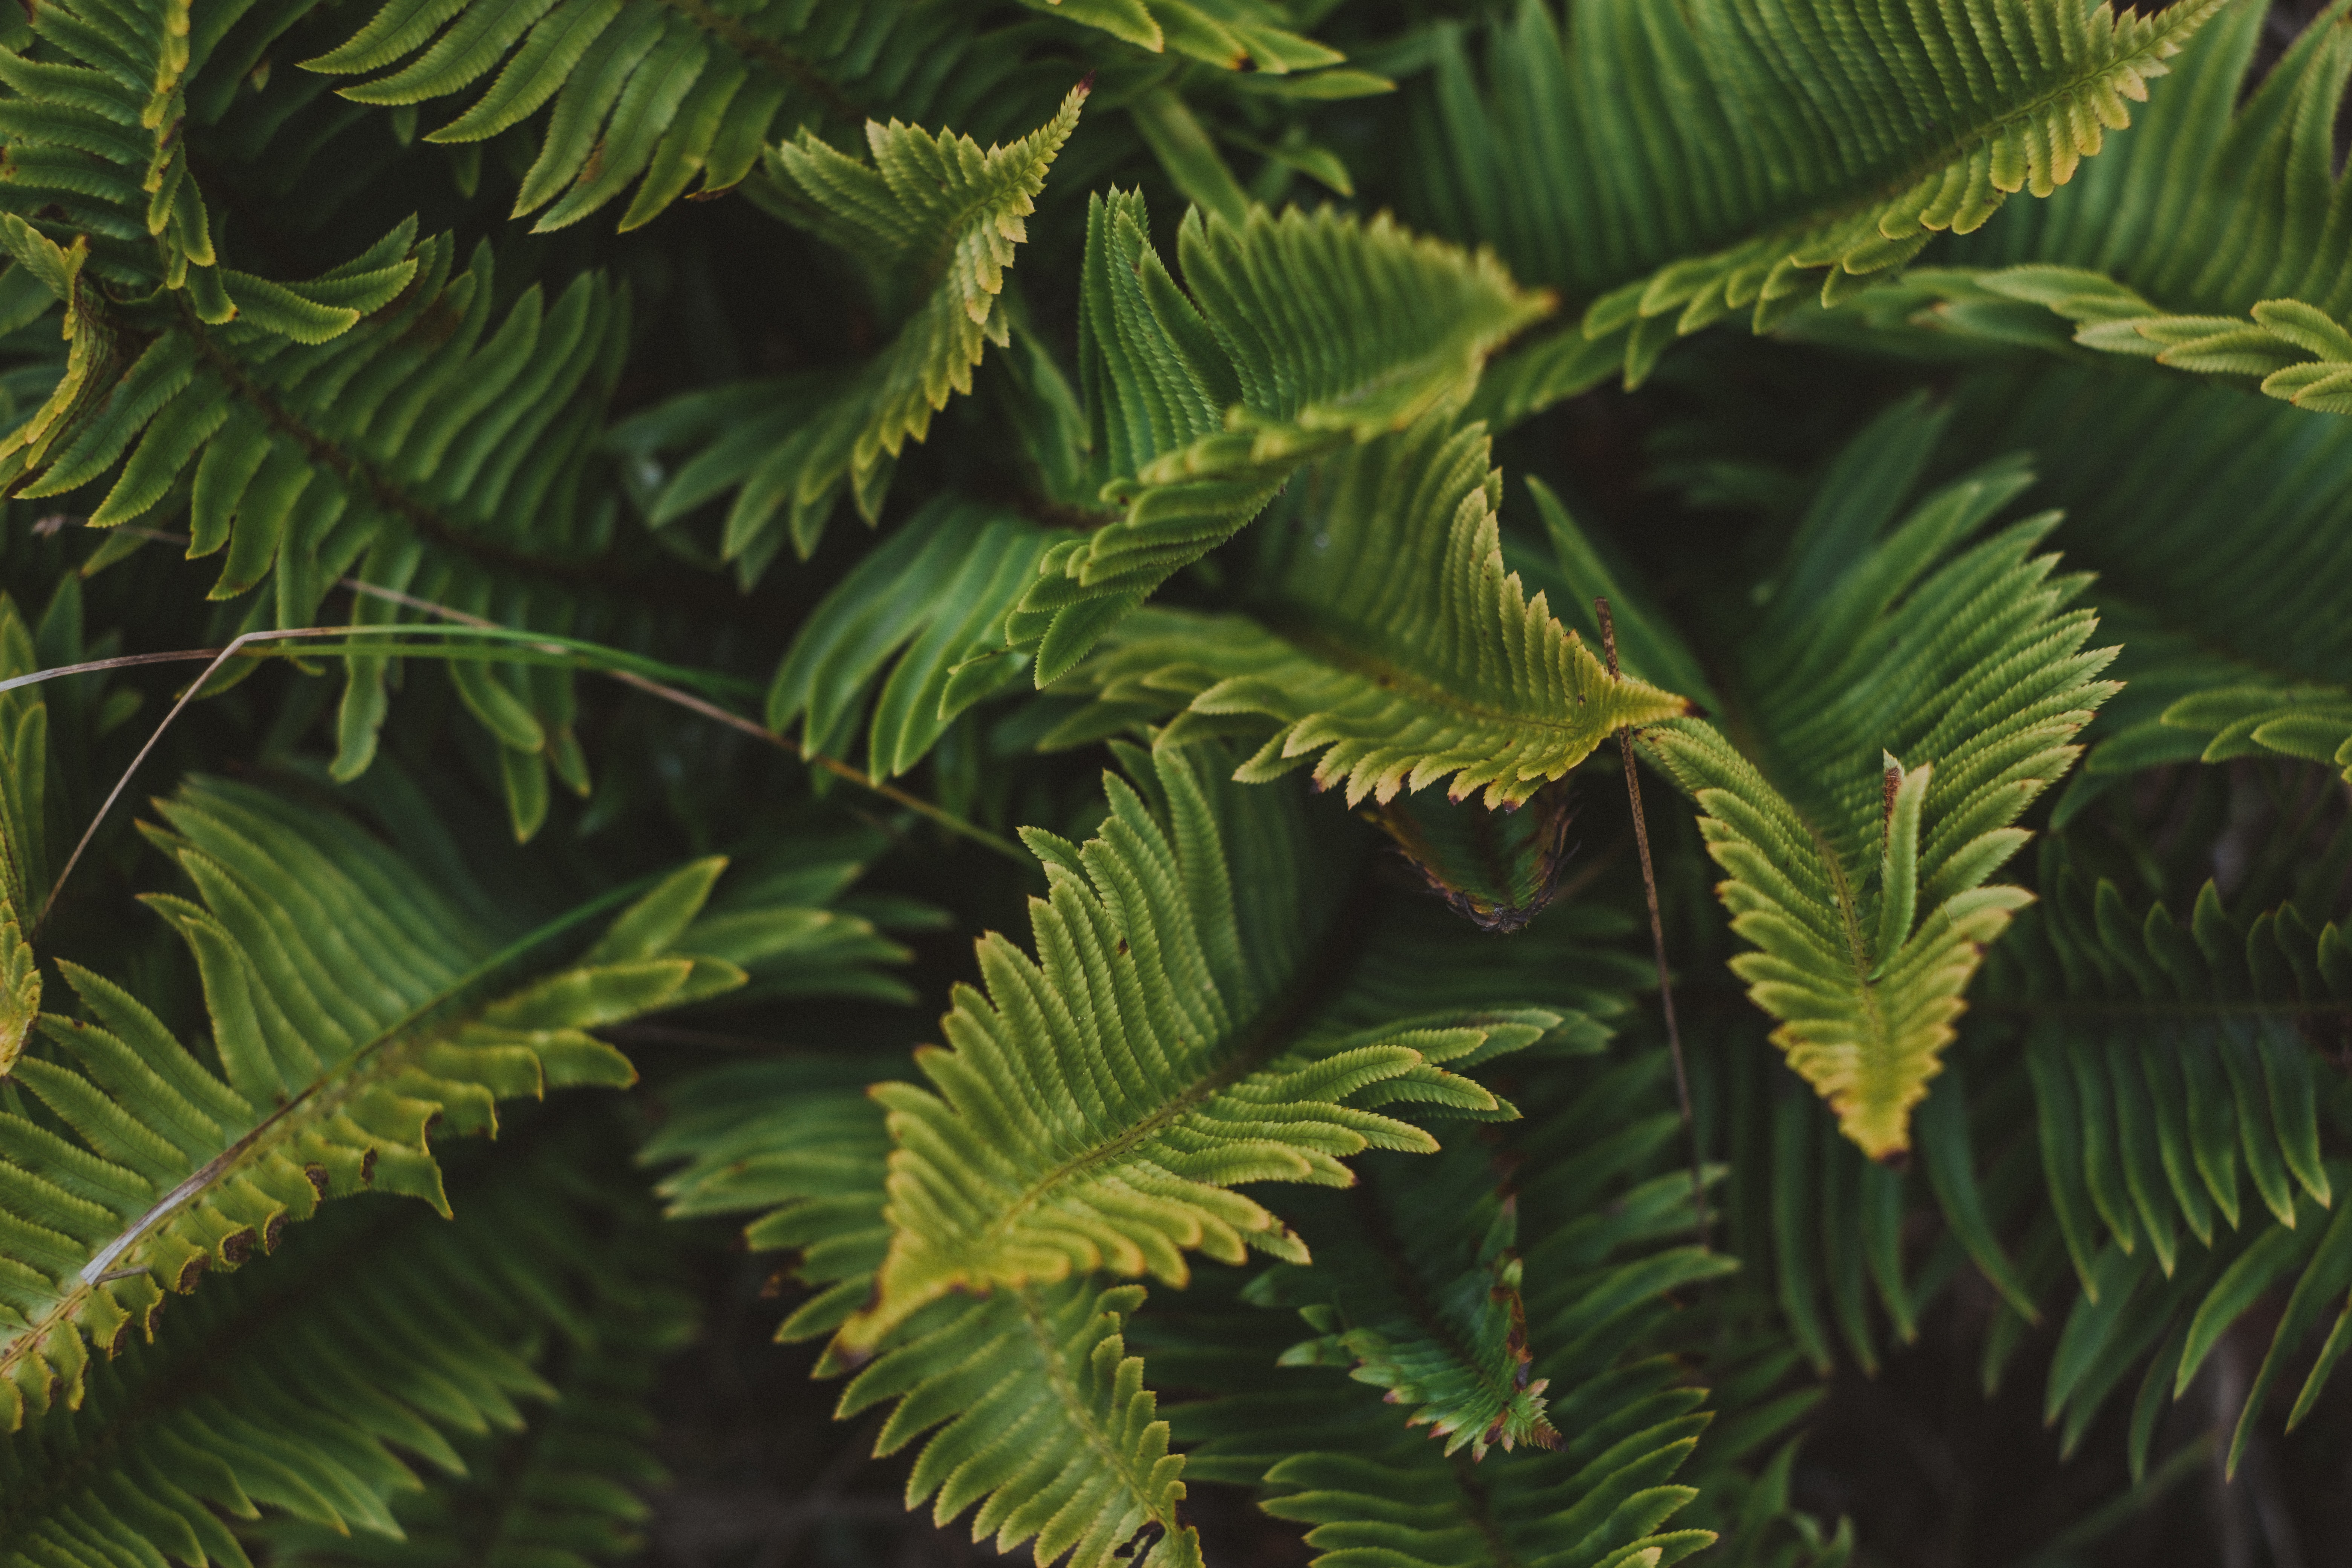 93989 download wallpaper Leaves, Plant, Macro, Fern screensavers and pictures for free